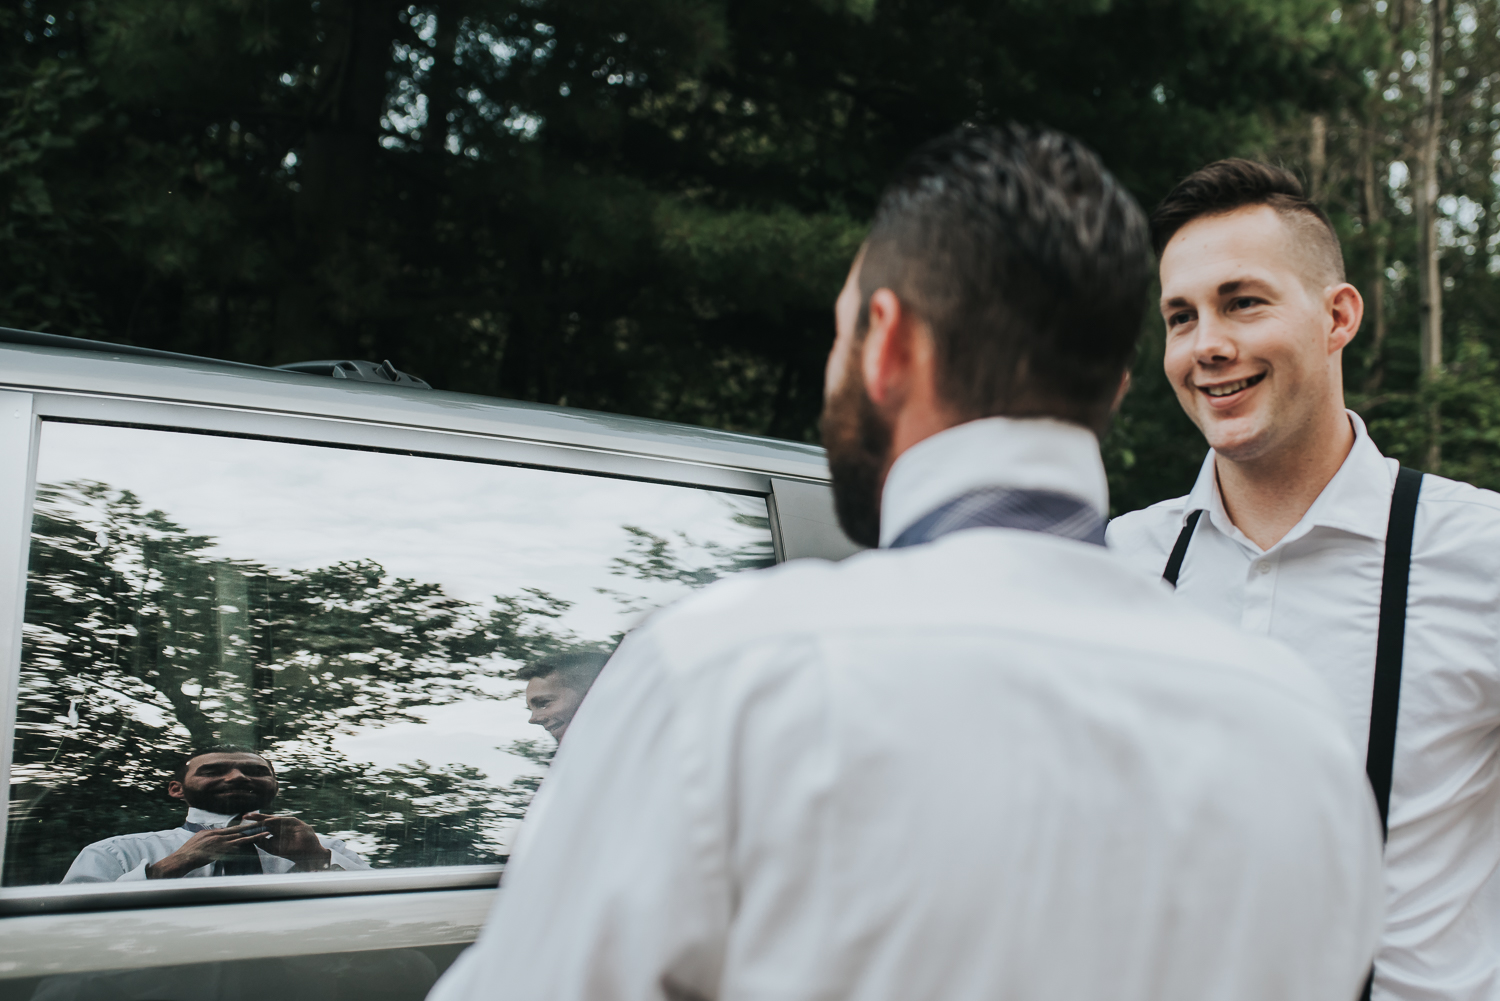 Groom putting on his tie in the reflection of a car window while his groomsman looks on both in white shirts and black suspenders